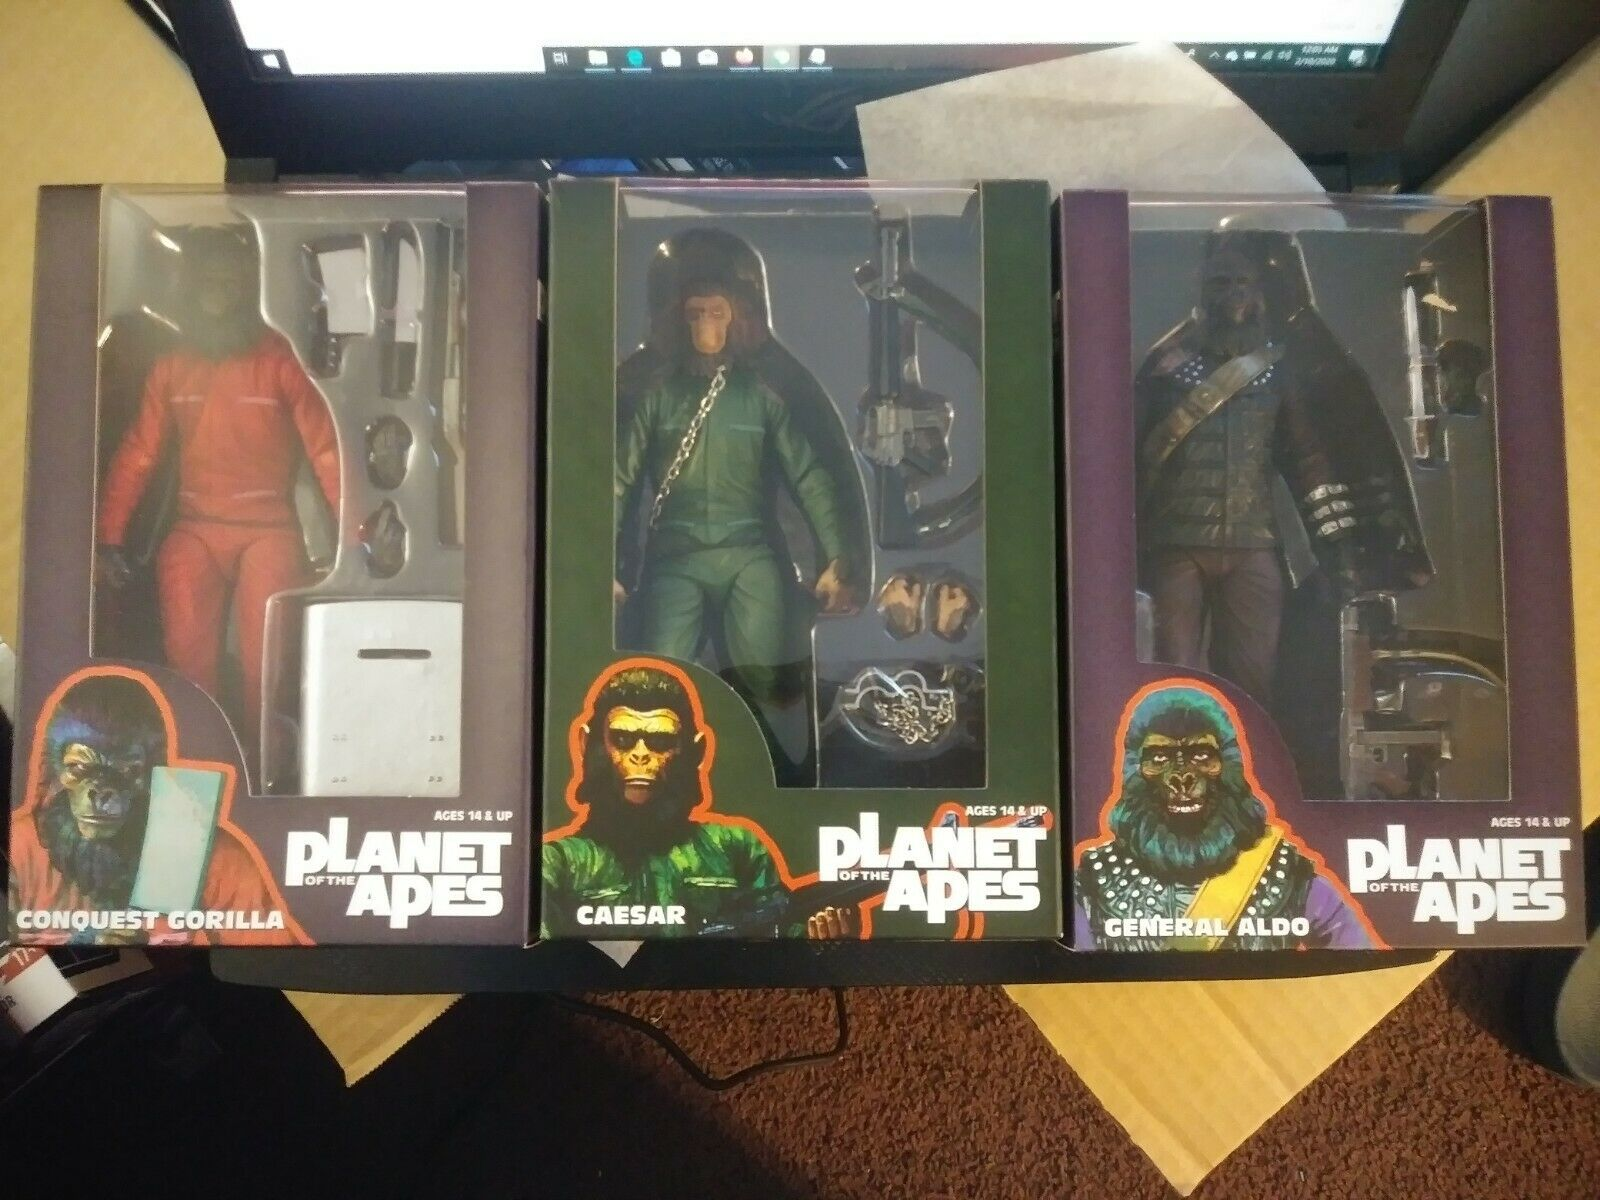 NECA Planet of the Apes Classic Series 3 General Aldo 7 Action Figure